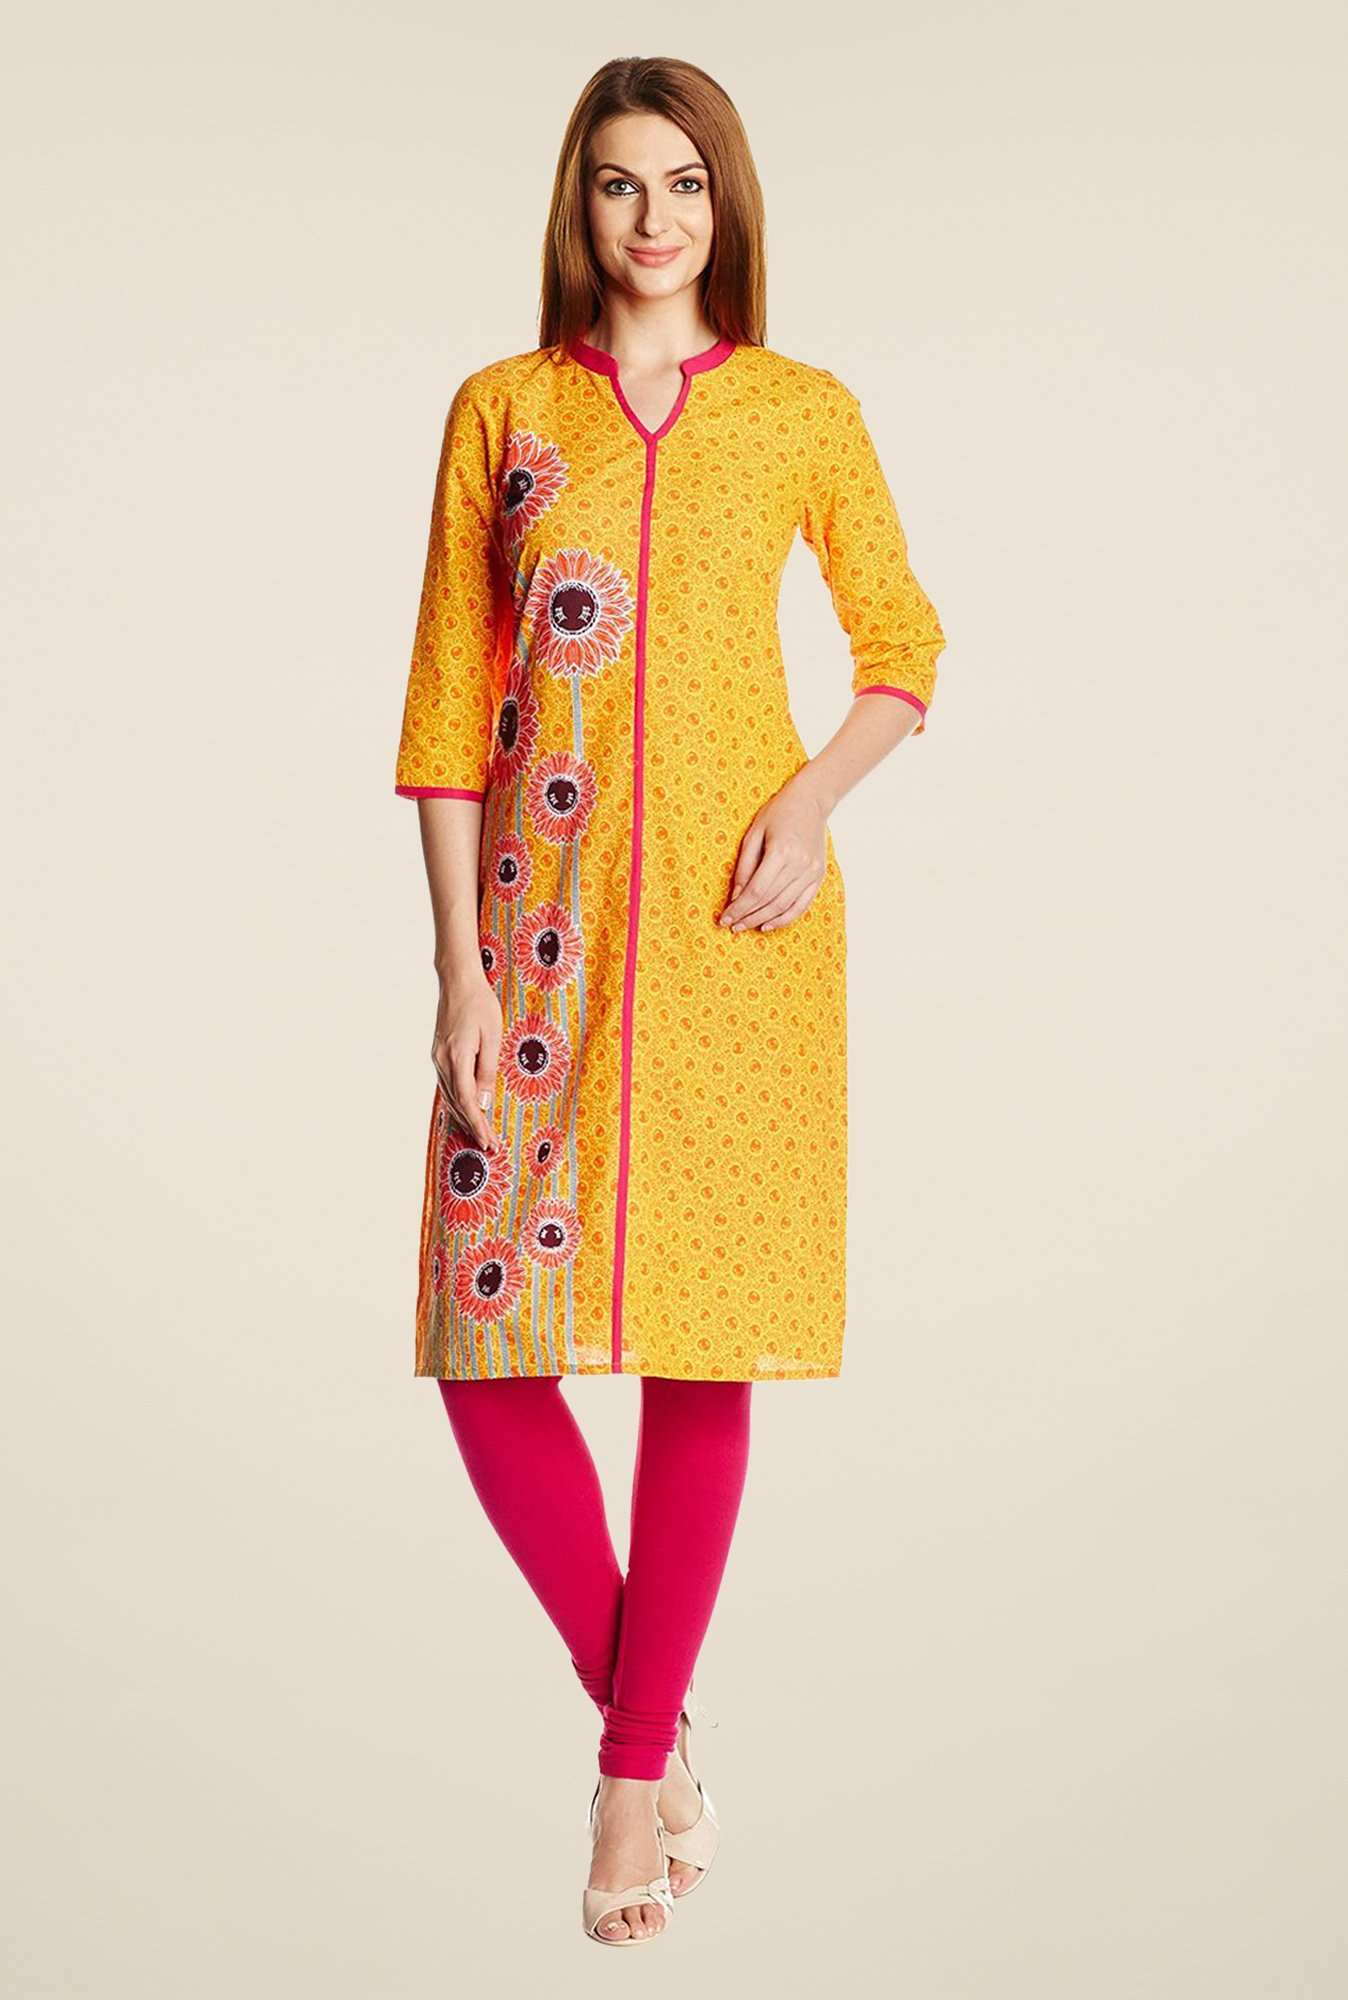 Aurelia Yellow Band Neck Printed Kurta